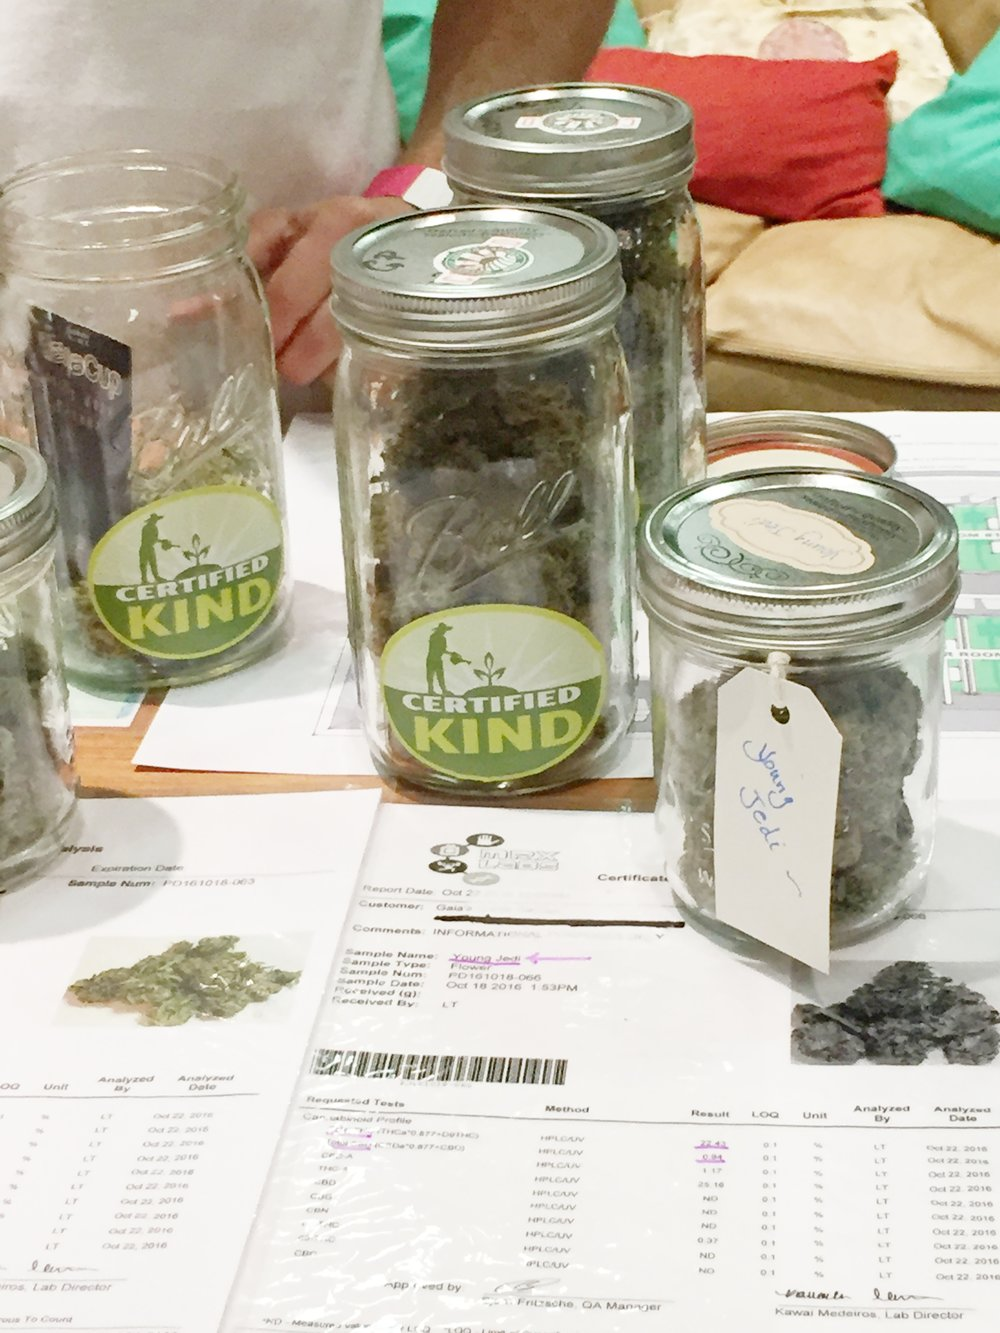 Oregon Cannaabis Certified Kind Jars.JPG